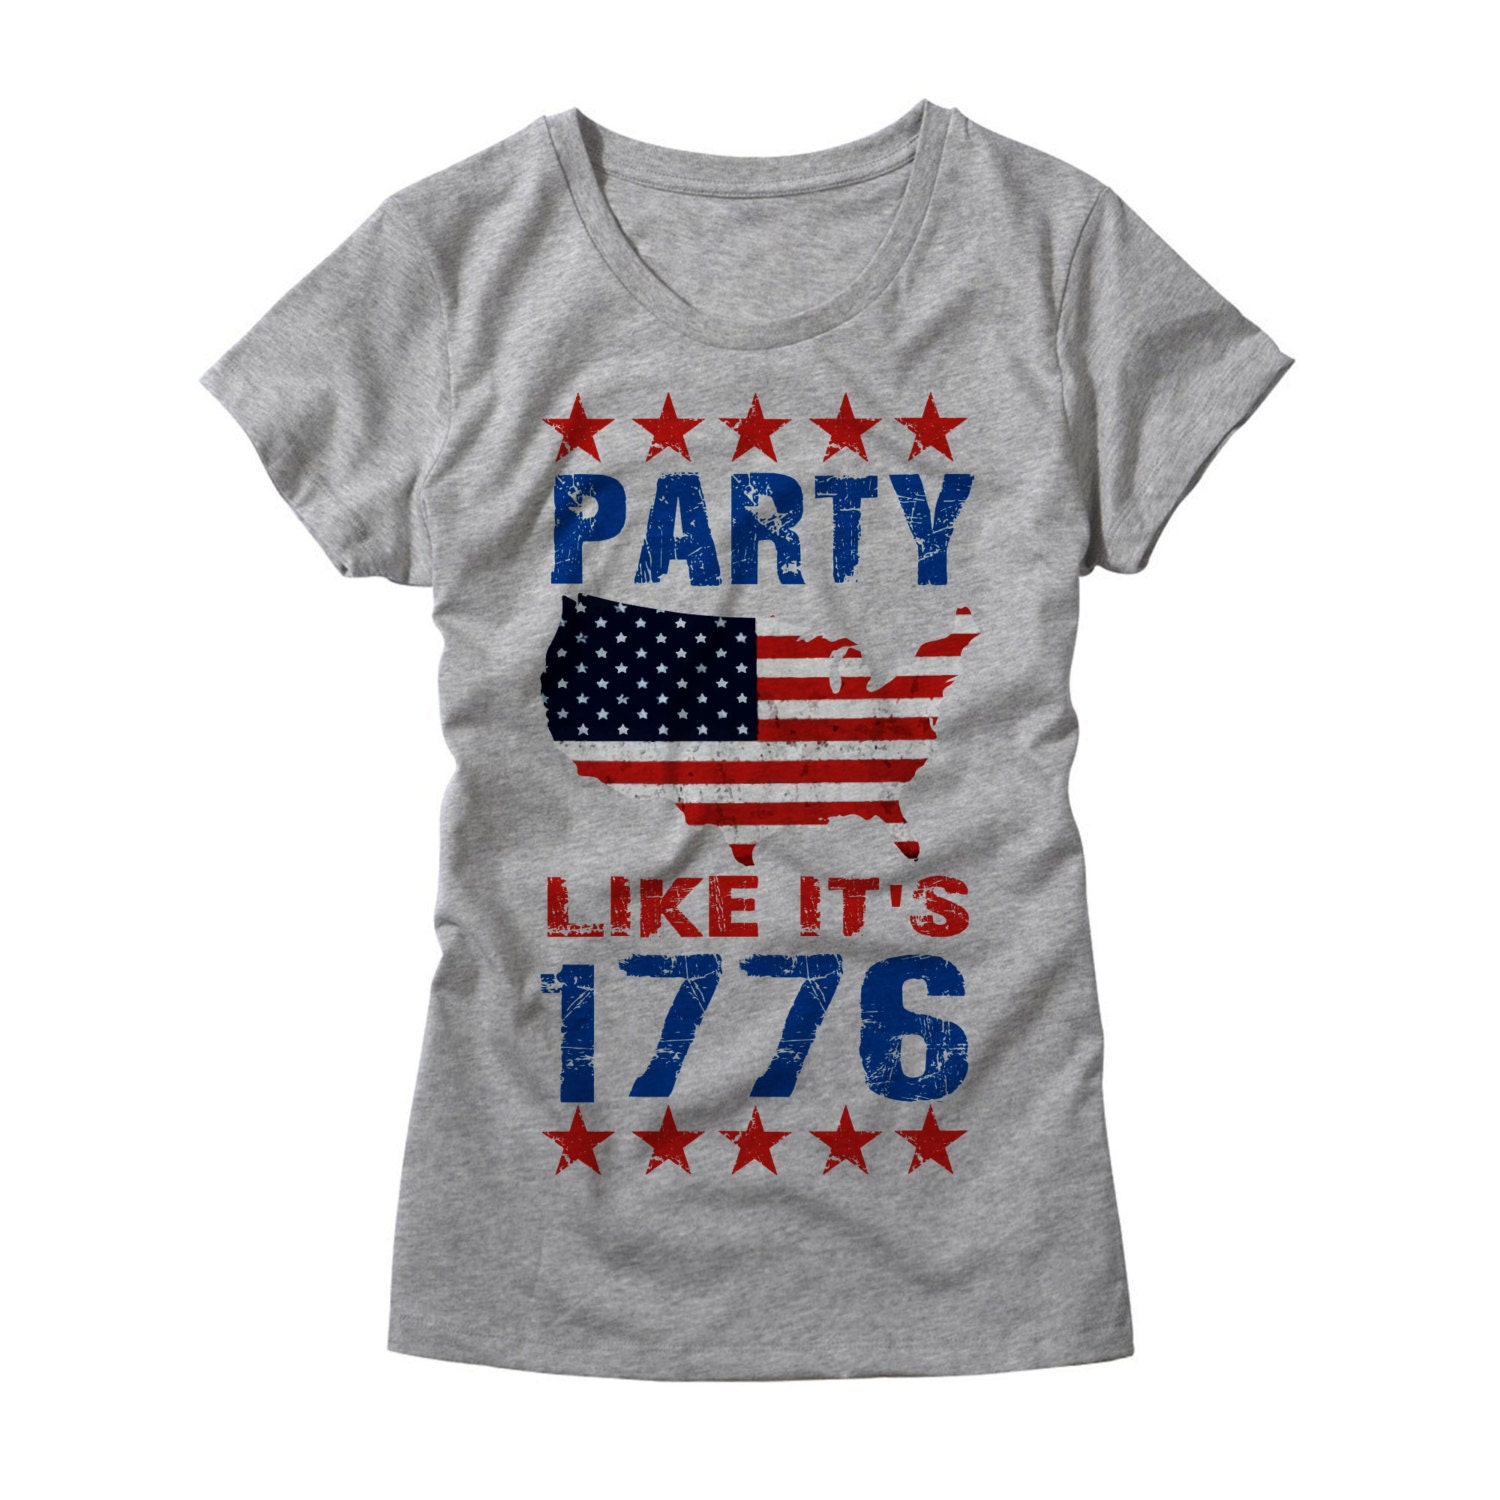 Womens Party Like its 1776 Shirt Funny Ladies USA TShirt